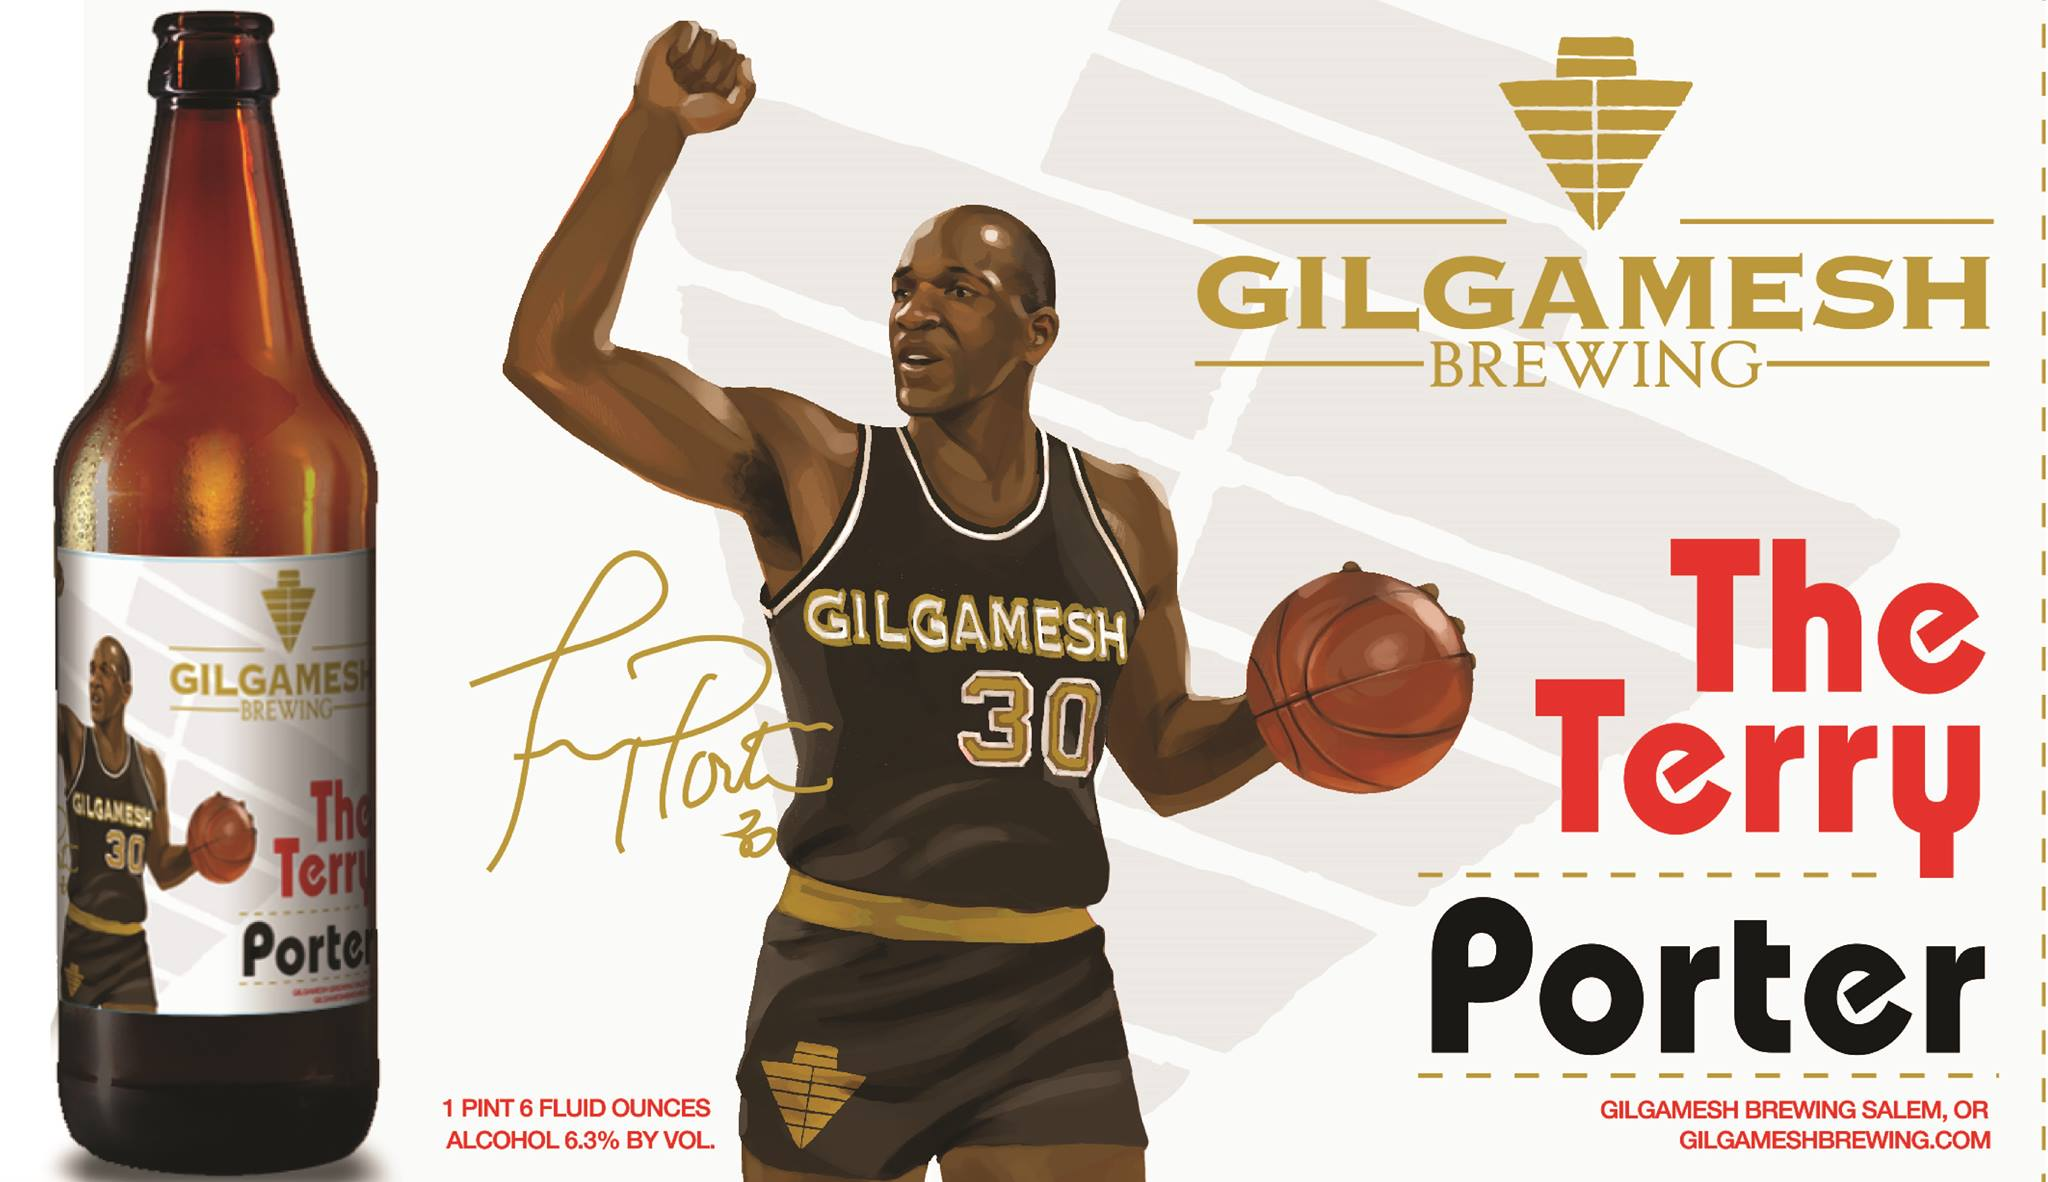 Gilgamesh Brewing The Terry Porter